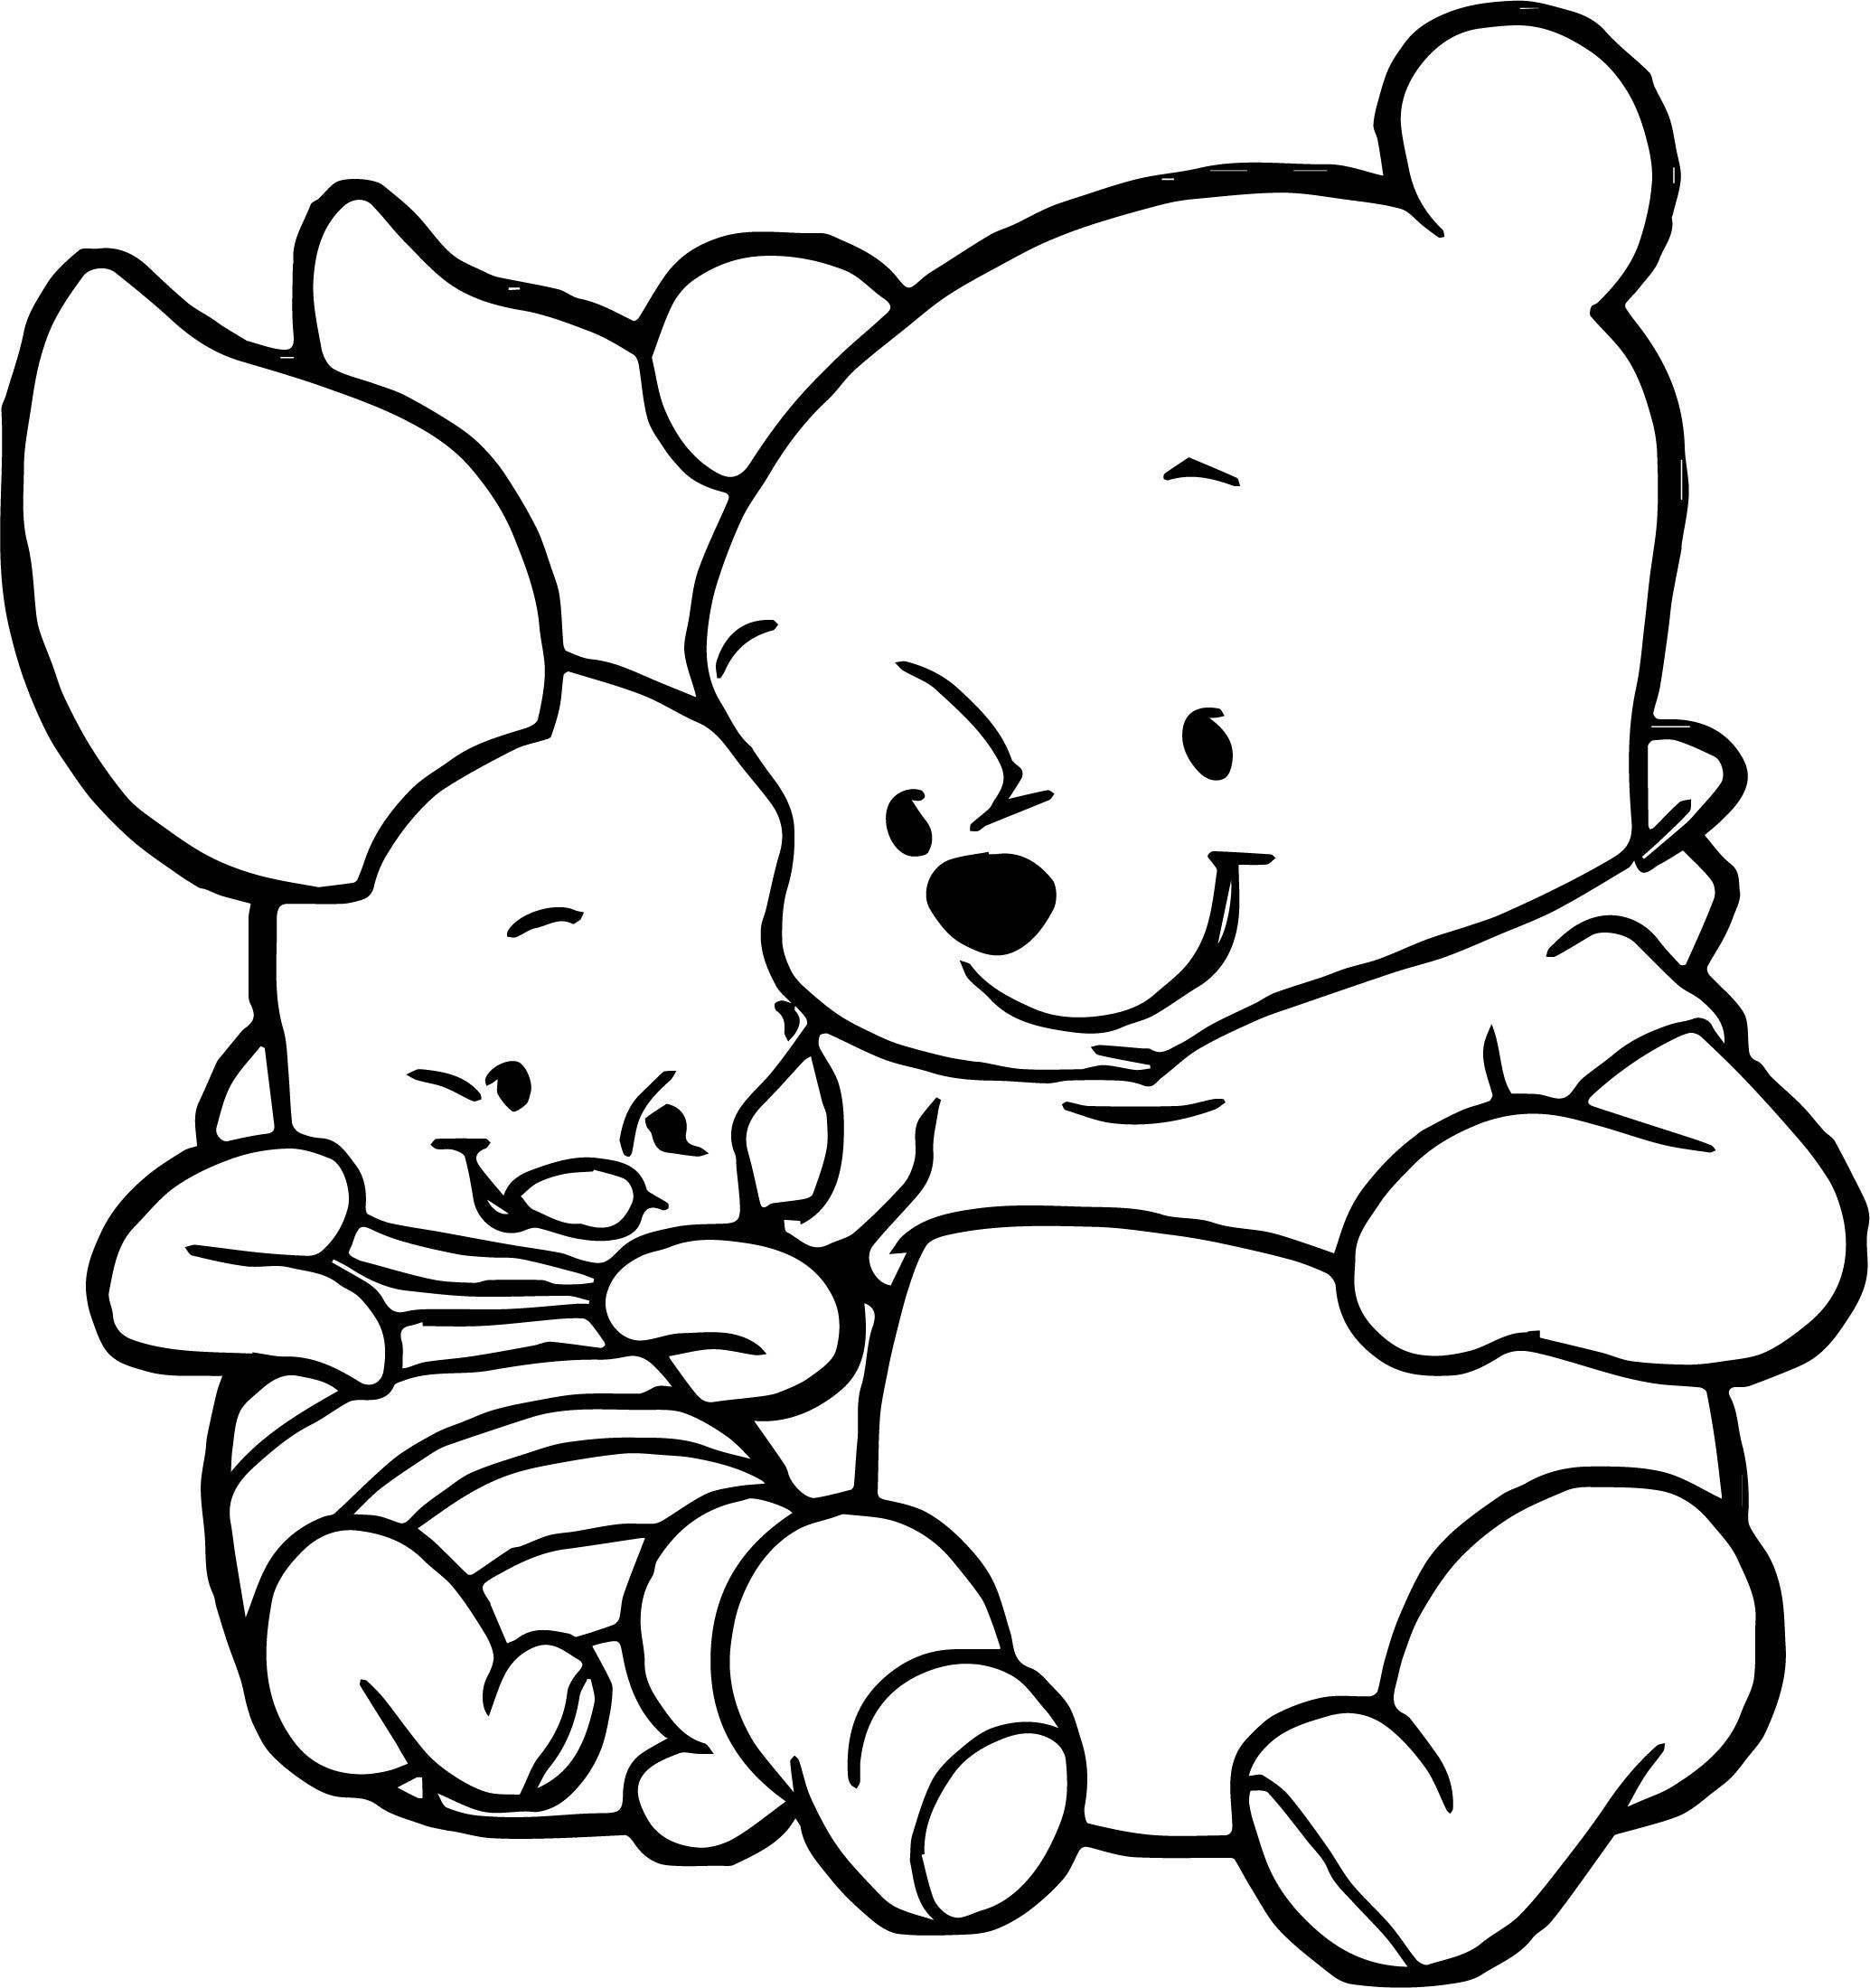 winnie the pooh pictures to color winnie the pooh coloring pages disneyclipscom color the to winnie pooh pictures